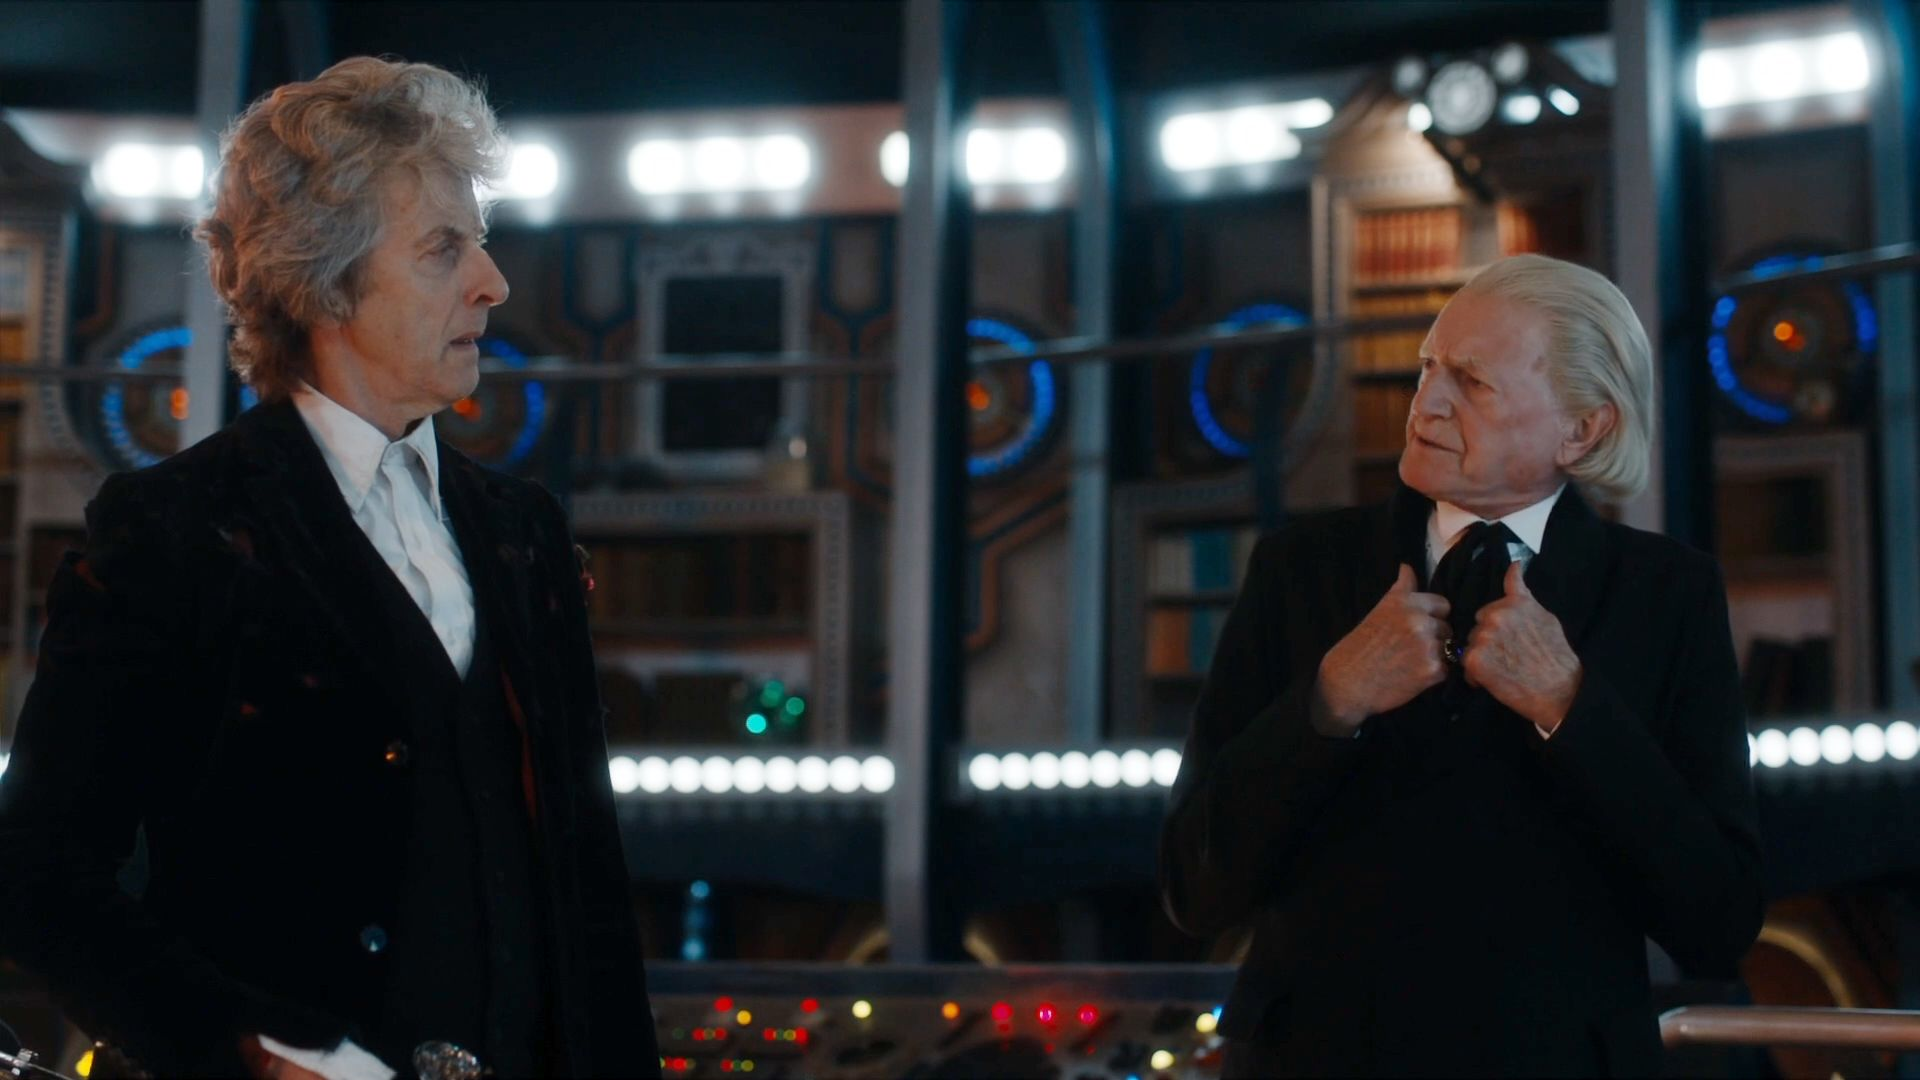 Doctor Who - Twice Upon a Time extra